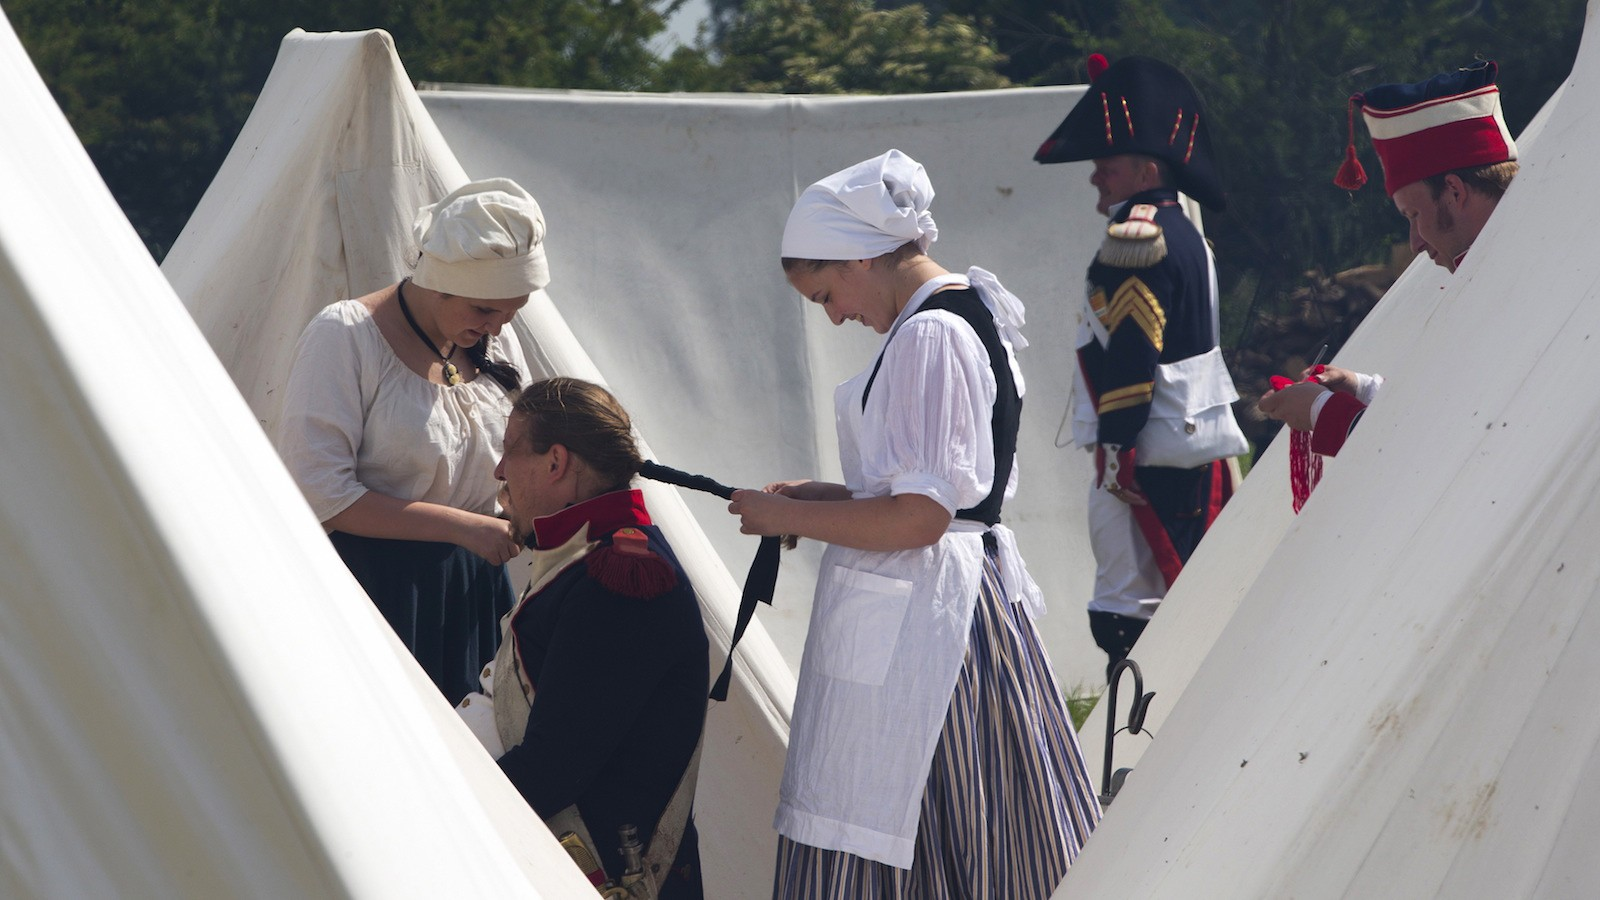 Performers take part in the re-enactment of the visit of French Emperor Napoleon in the French troops' bivouac as part of the bicentennial celebrations for the Battle of Waterloo in Ligny